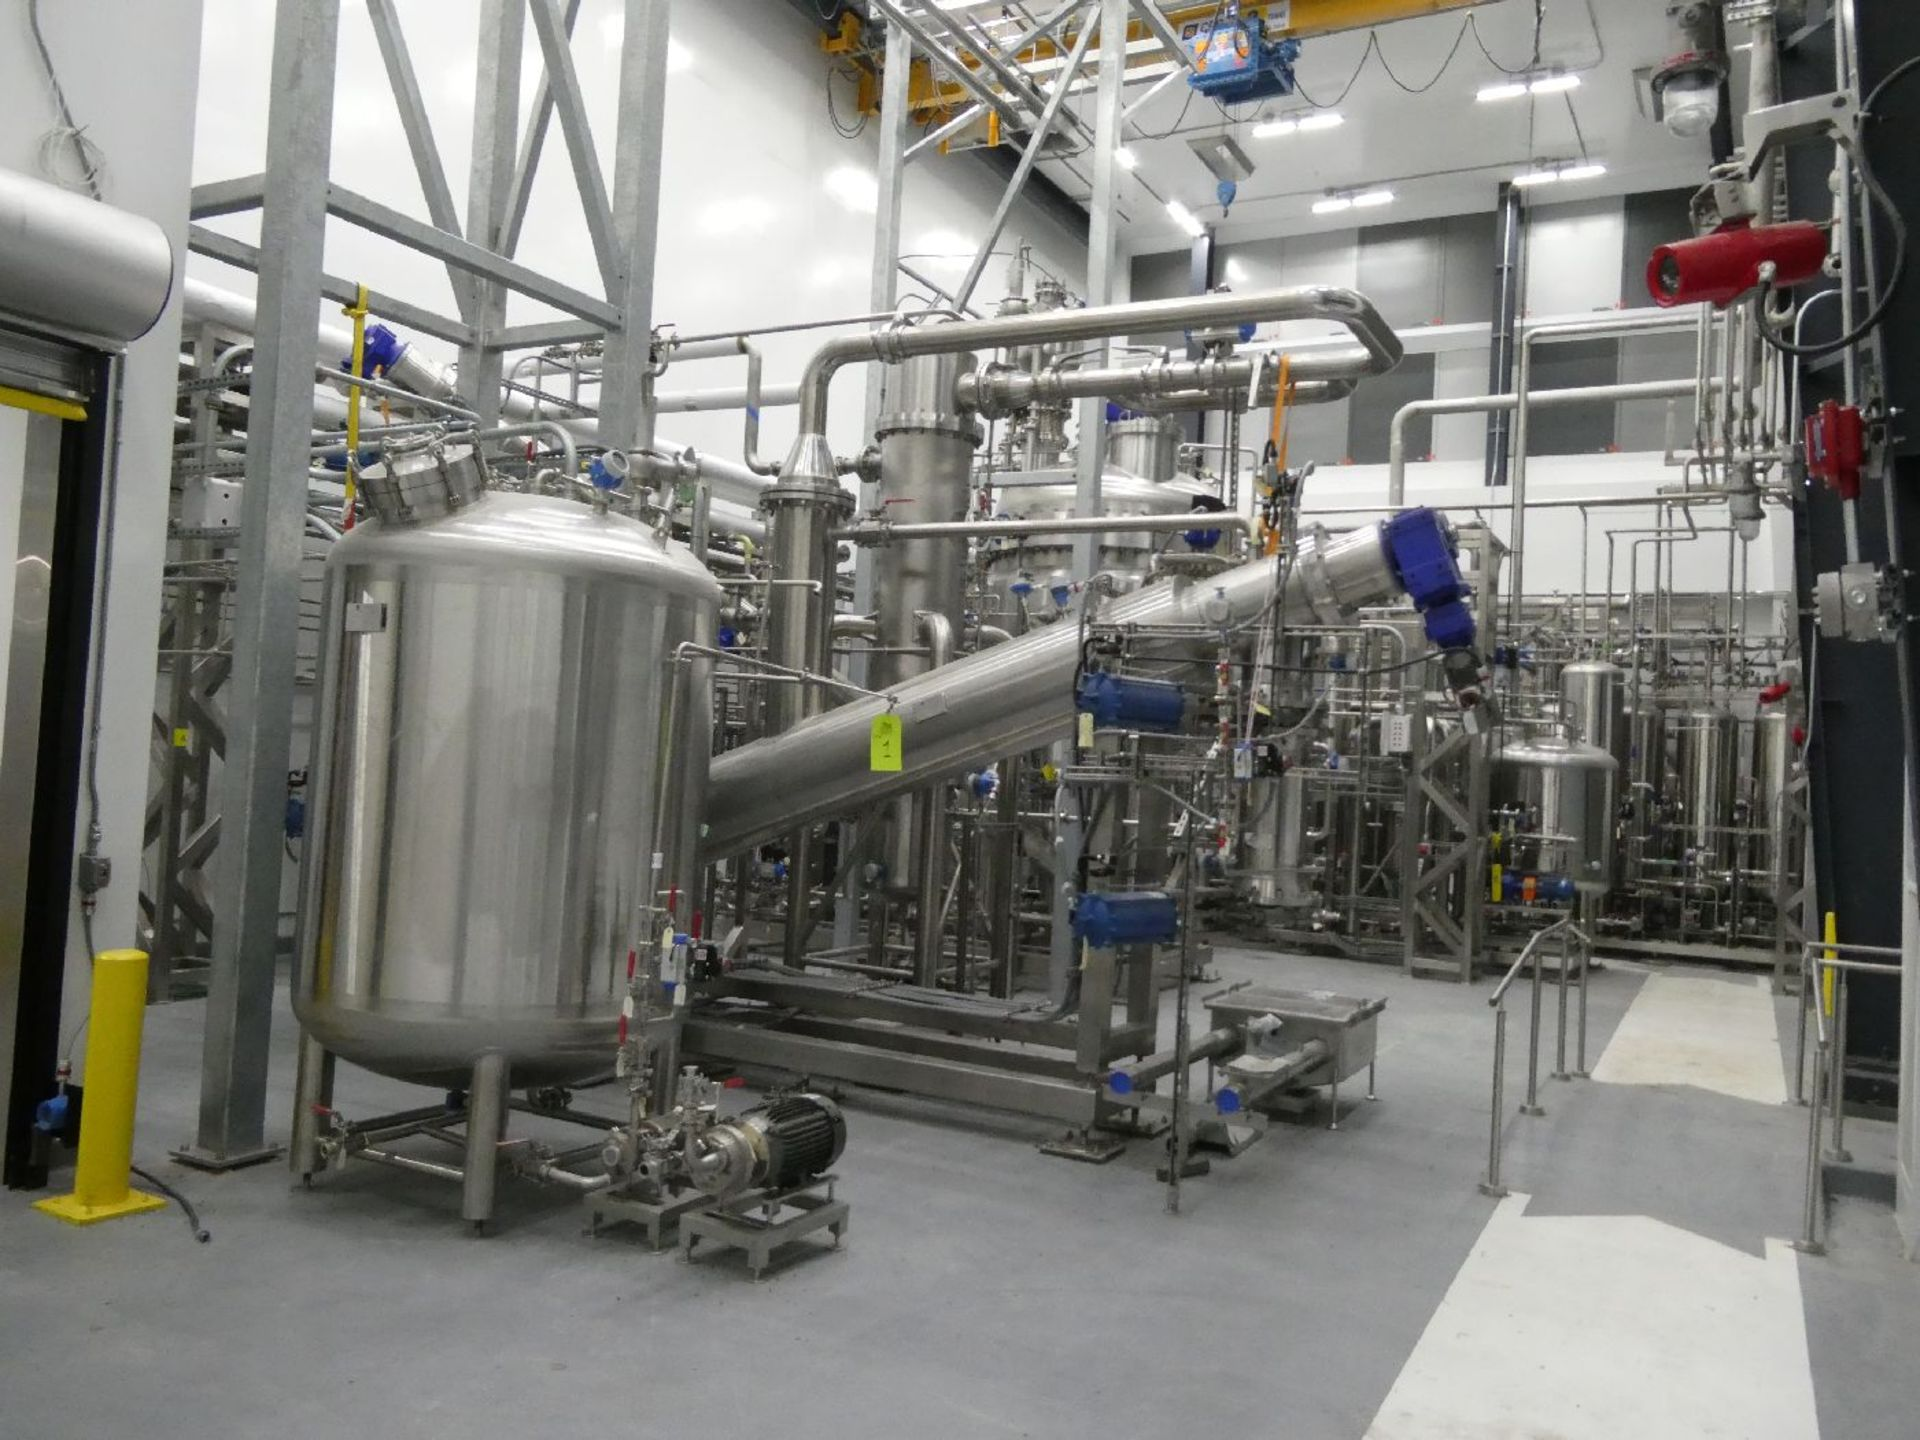 ROTAX Closed Loop Solvent Based Continuous Oil Extraction System - Image 50 of 68